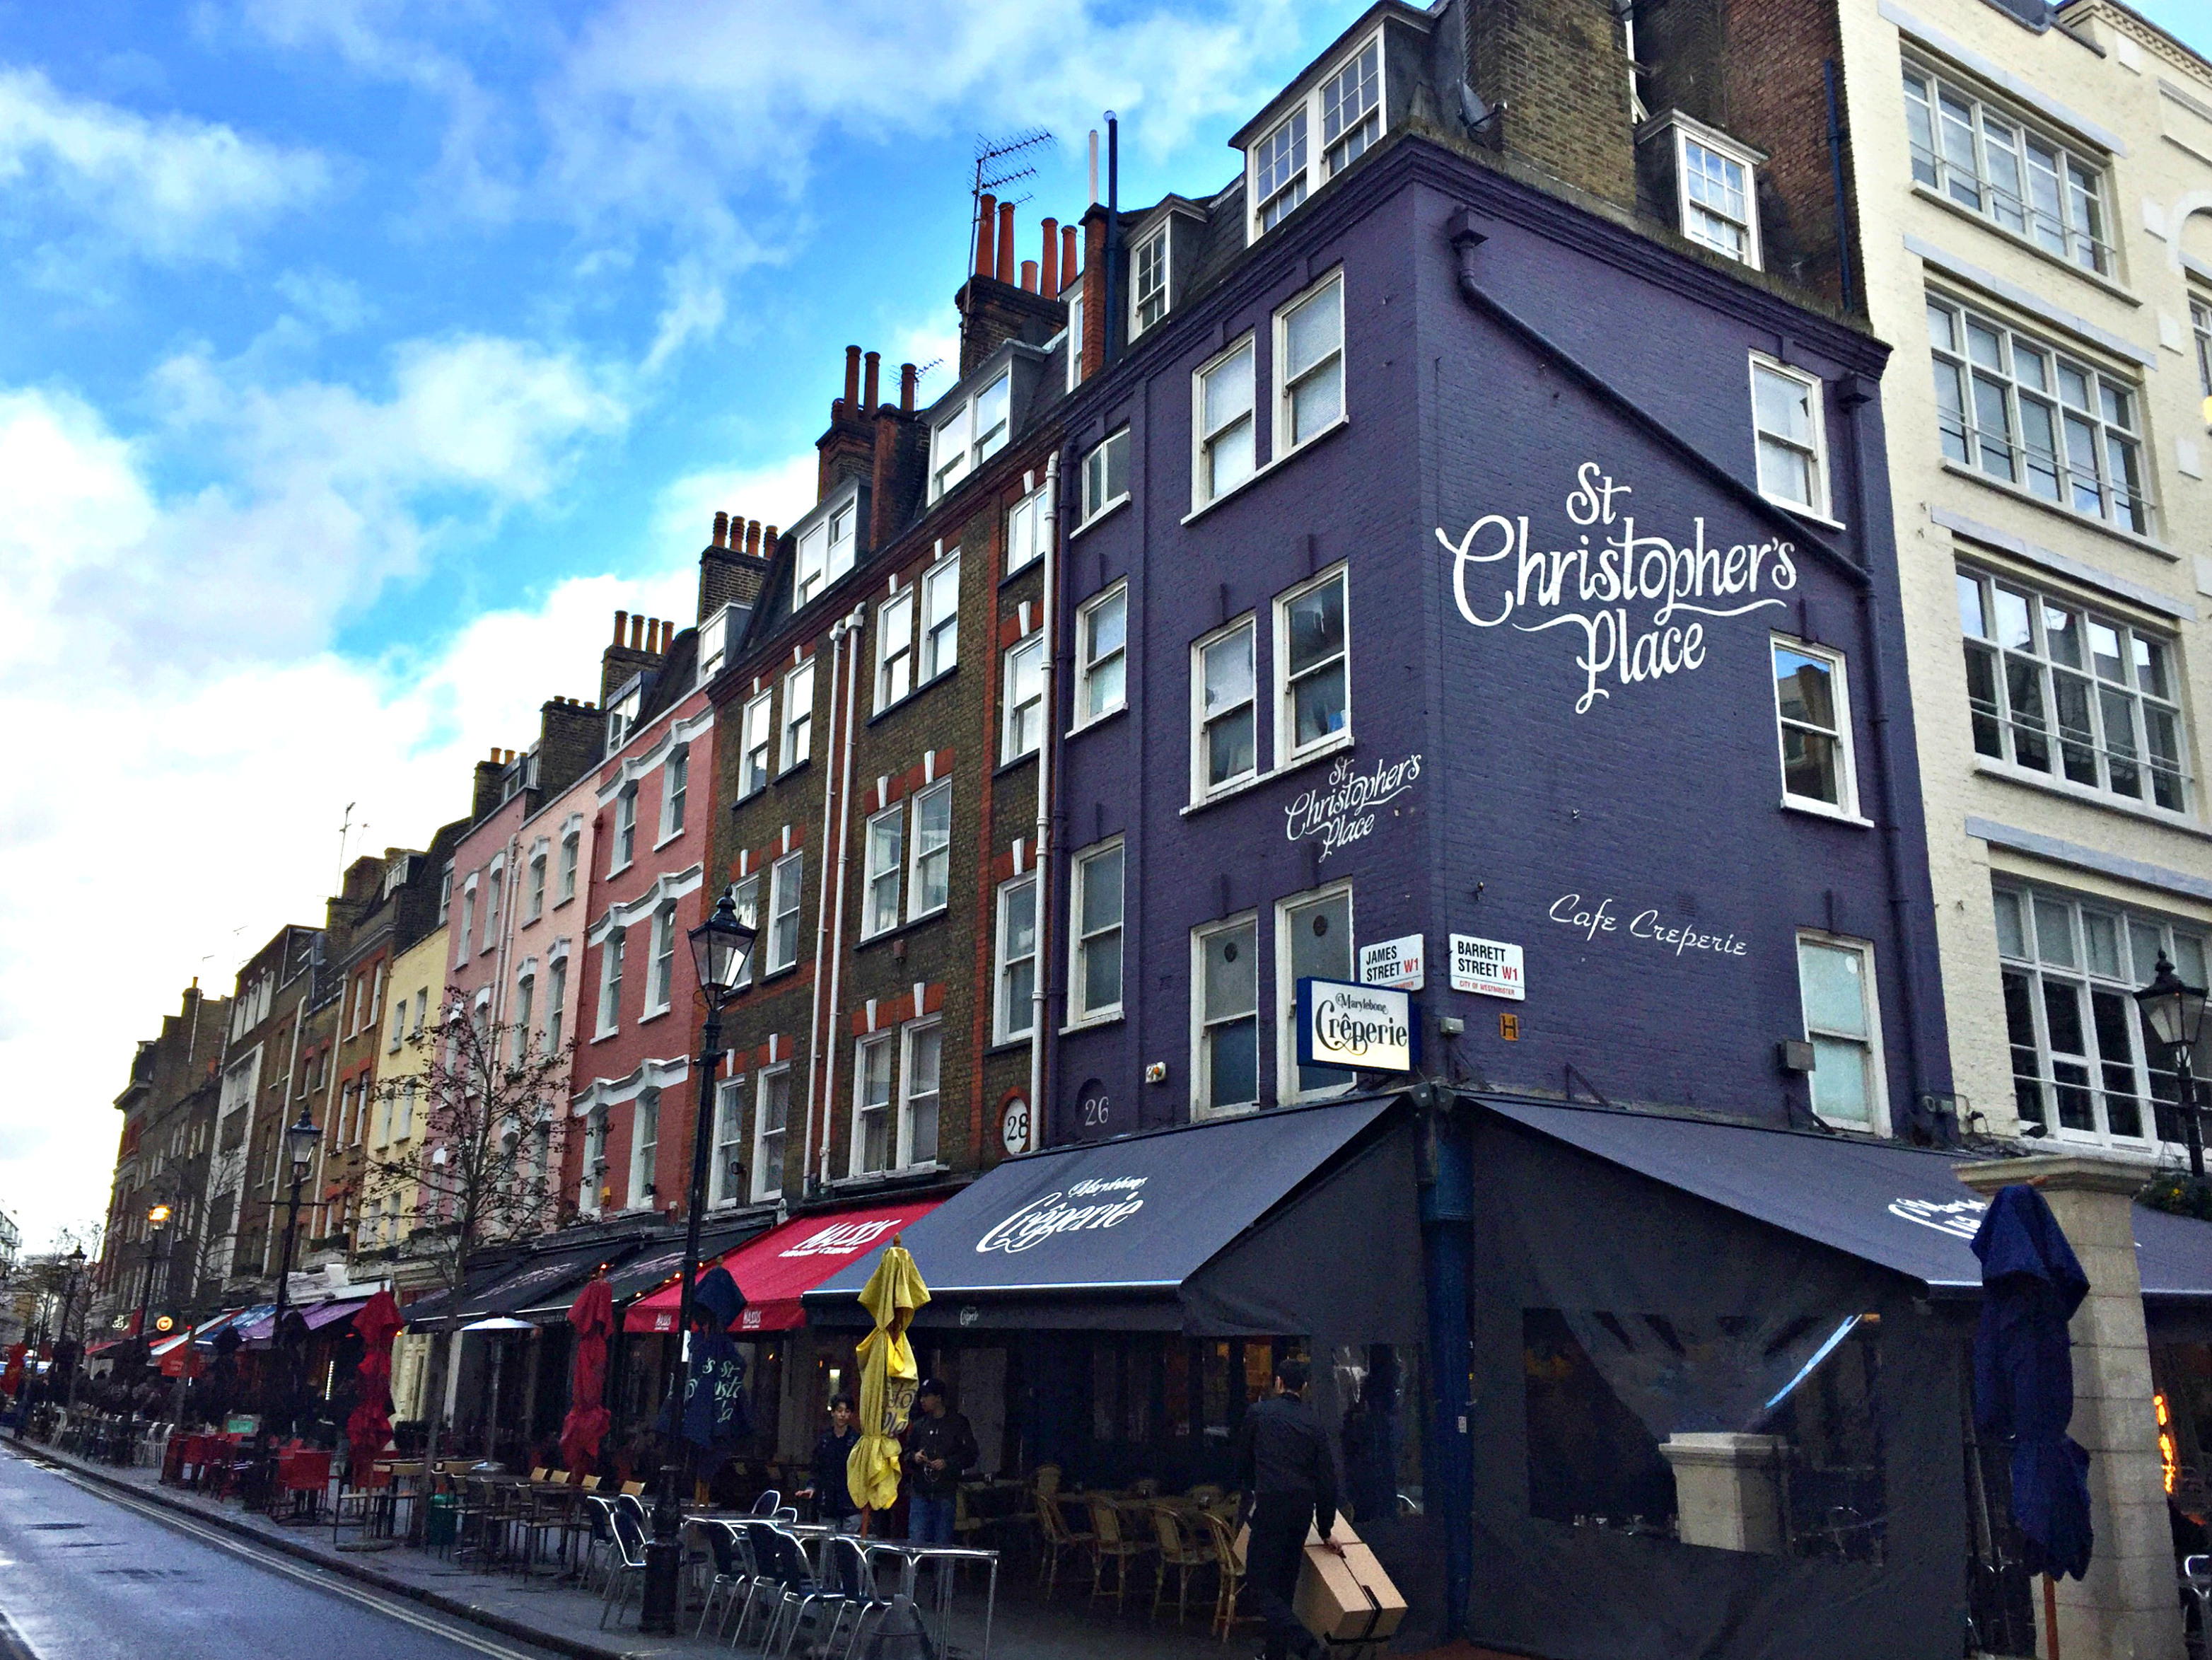 London St. Christopher's Place